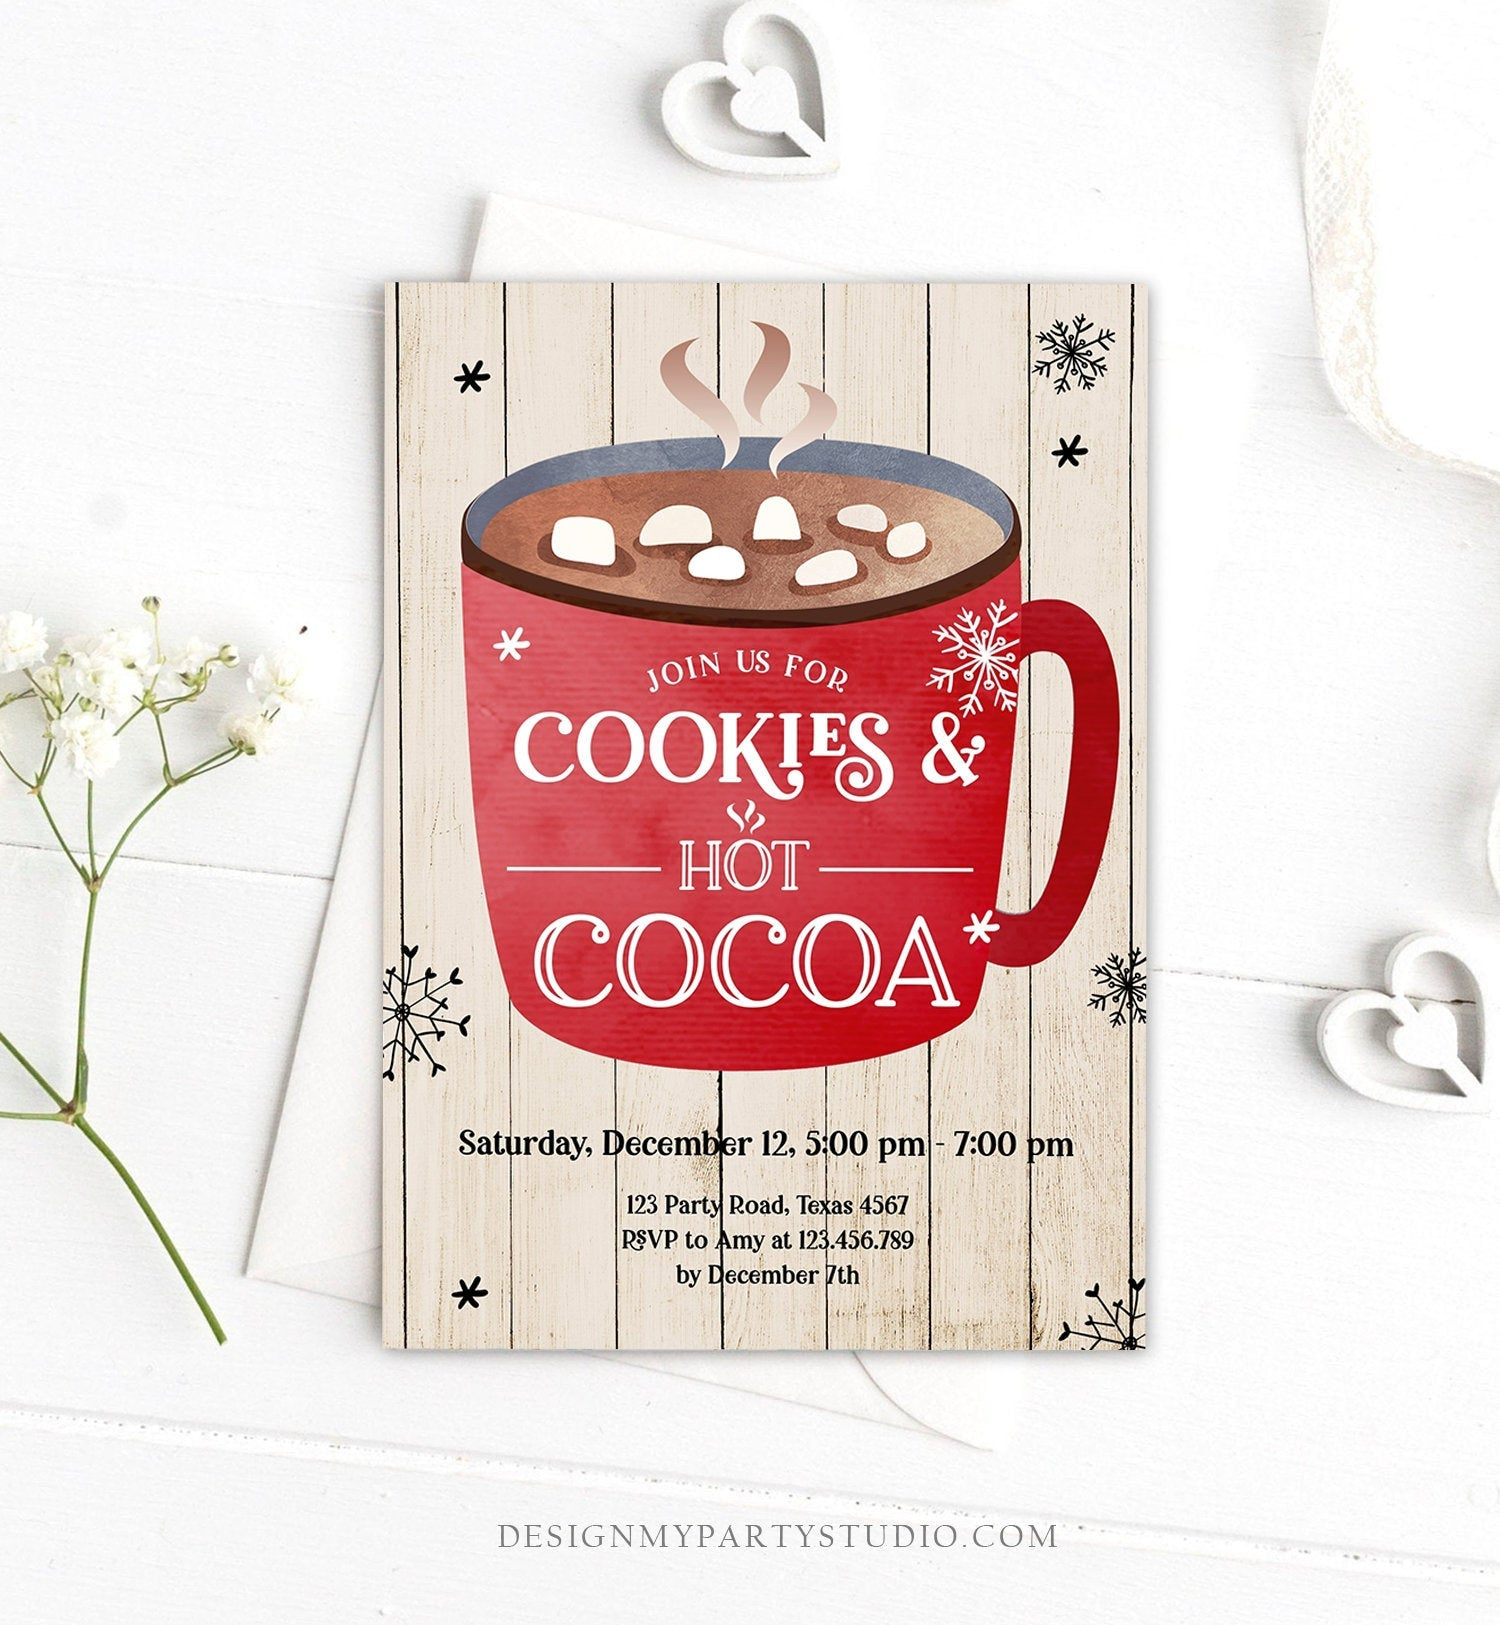 Editable Cookies and Cocoa Invitation Hot Cocoa Party Invitation Cookies and Milk Birthday Christmas Download Printable Template Corjl 0262